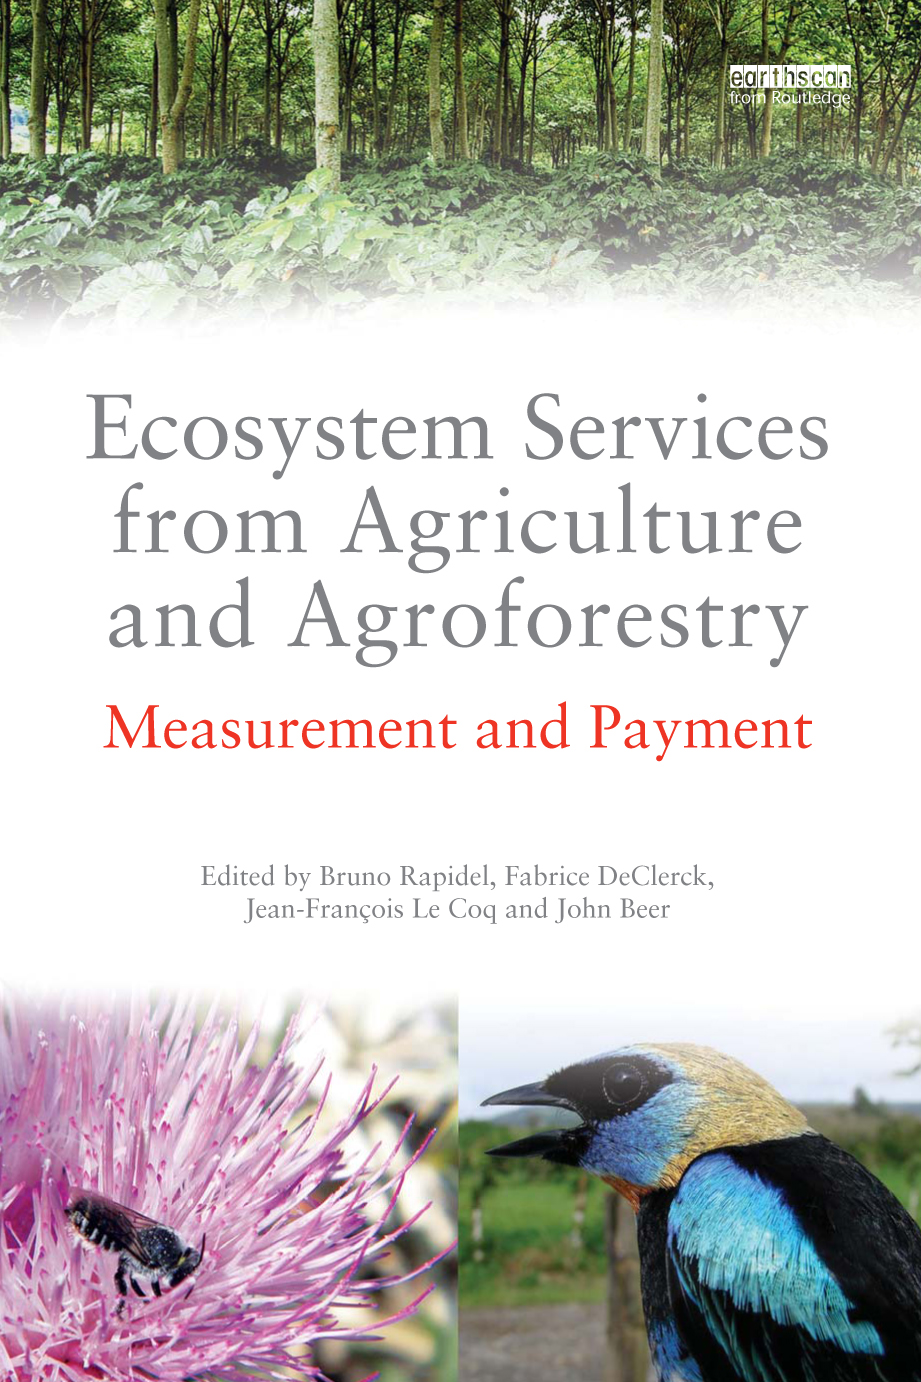 Ecosystem Services from Agriculture and Agroforestry Measurement and Payment